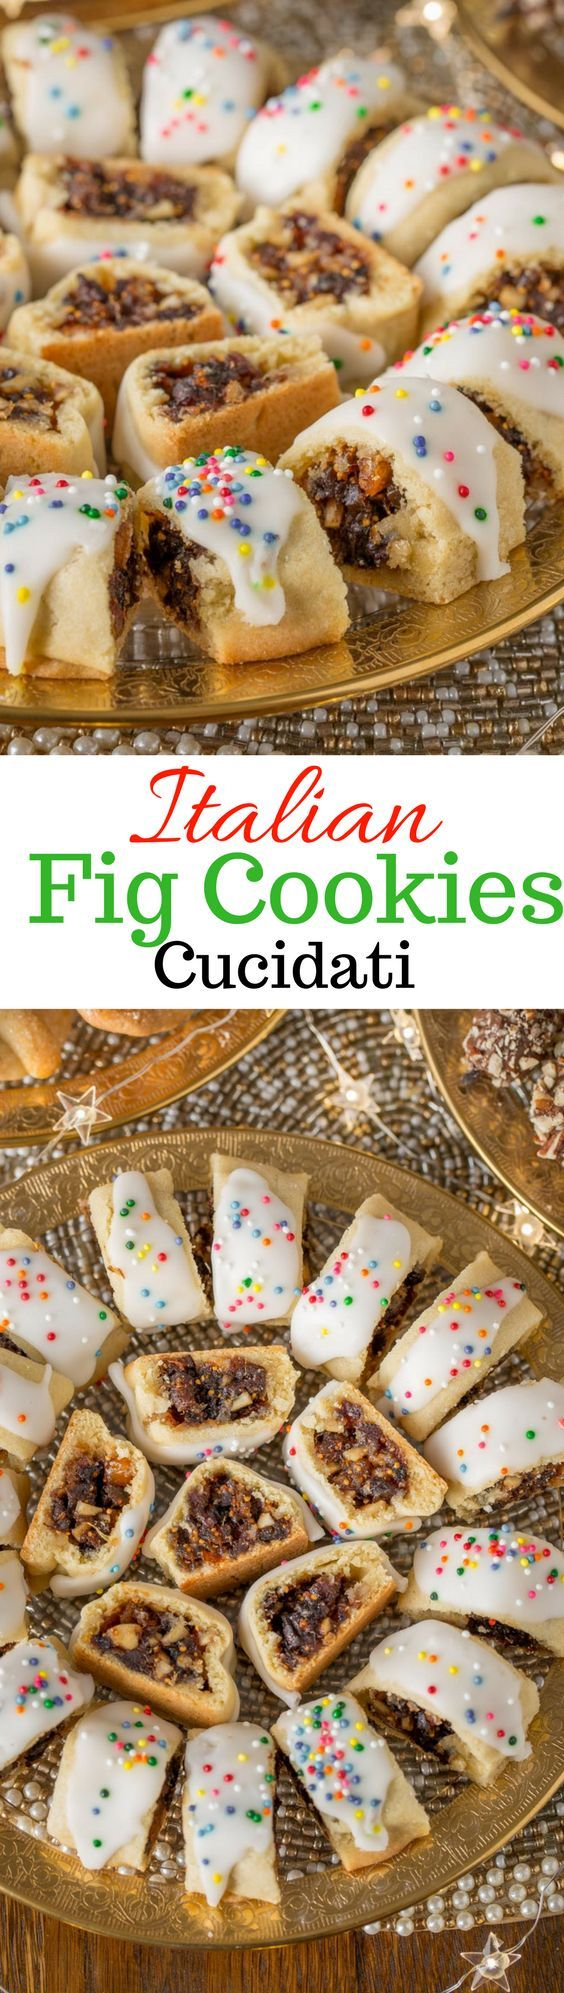 Italian fruit cookie recipe